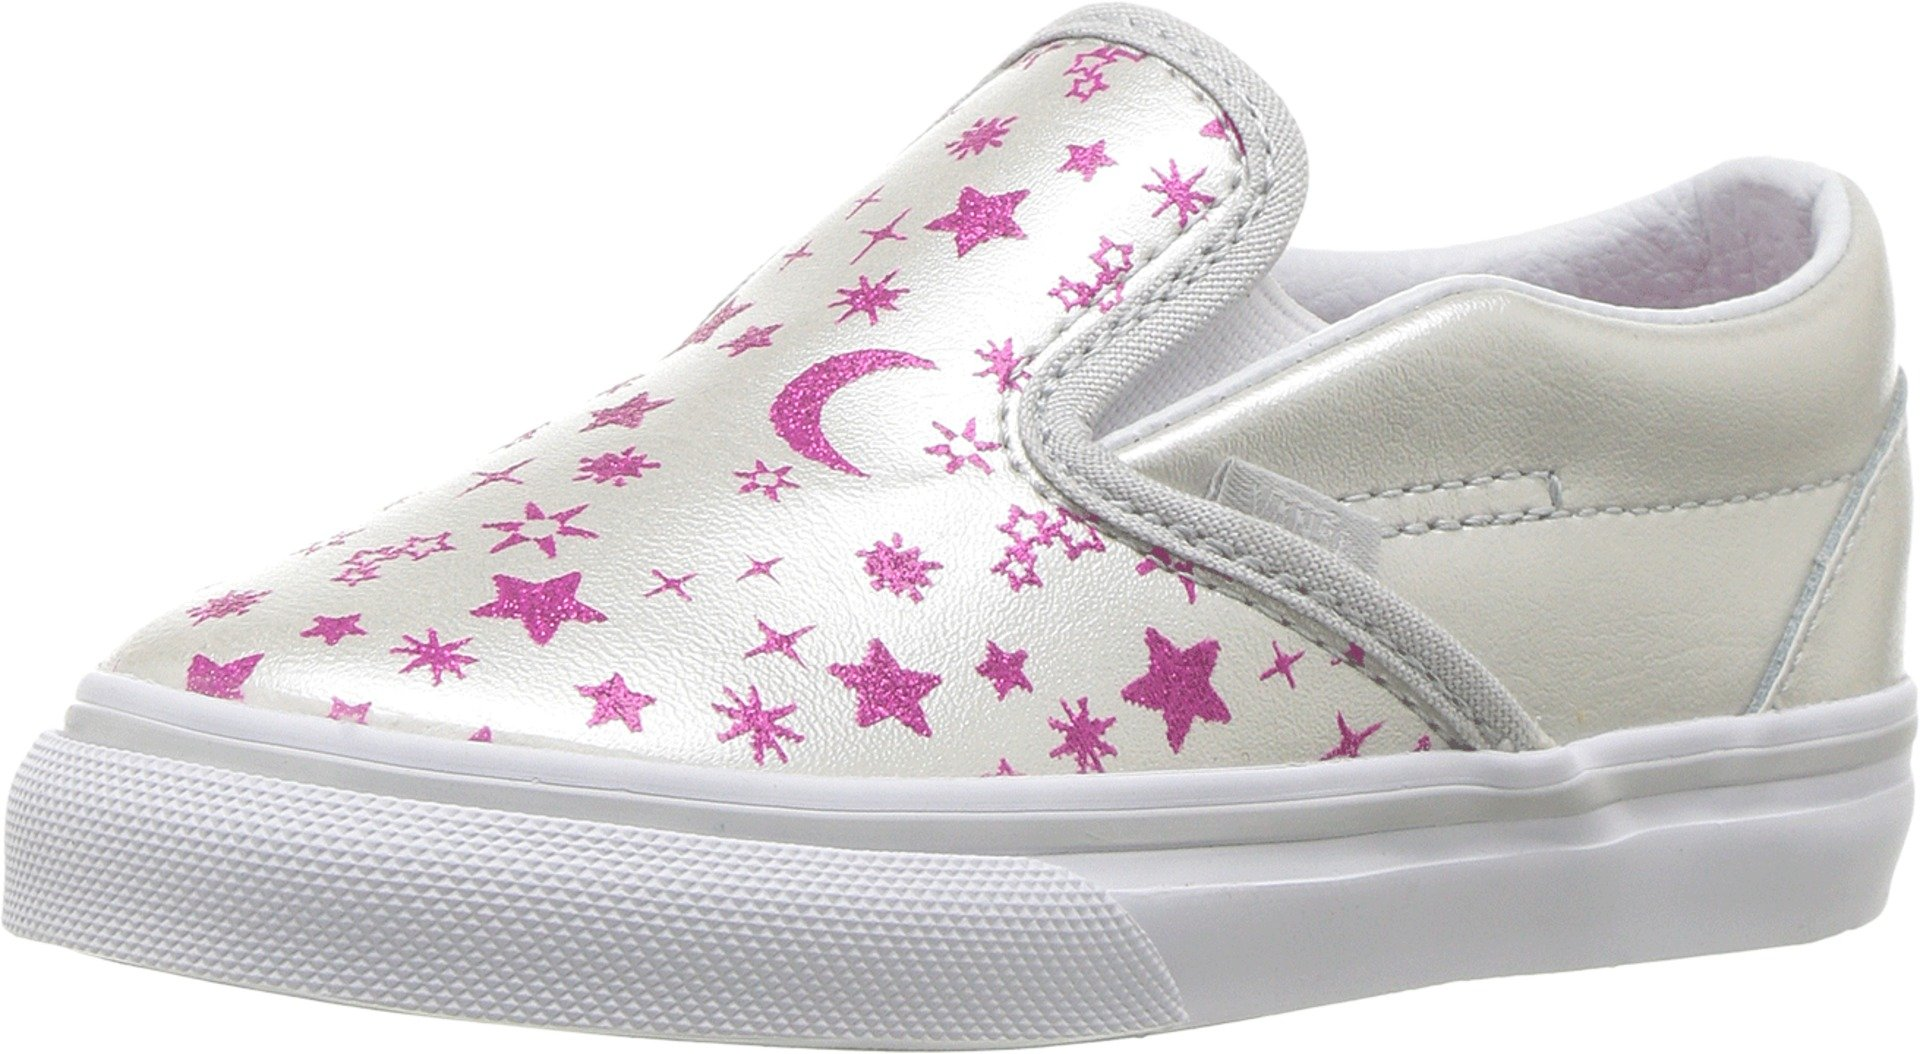 aae4c326cd Galleon - Vans Toddler s Classic Slip-On (Star Glitter) Microchip Glitter  First Walkers Shoes (5.5 M US Toddler)